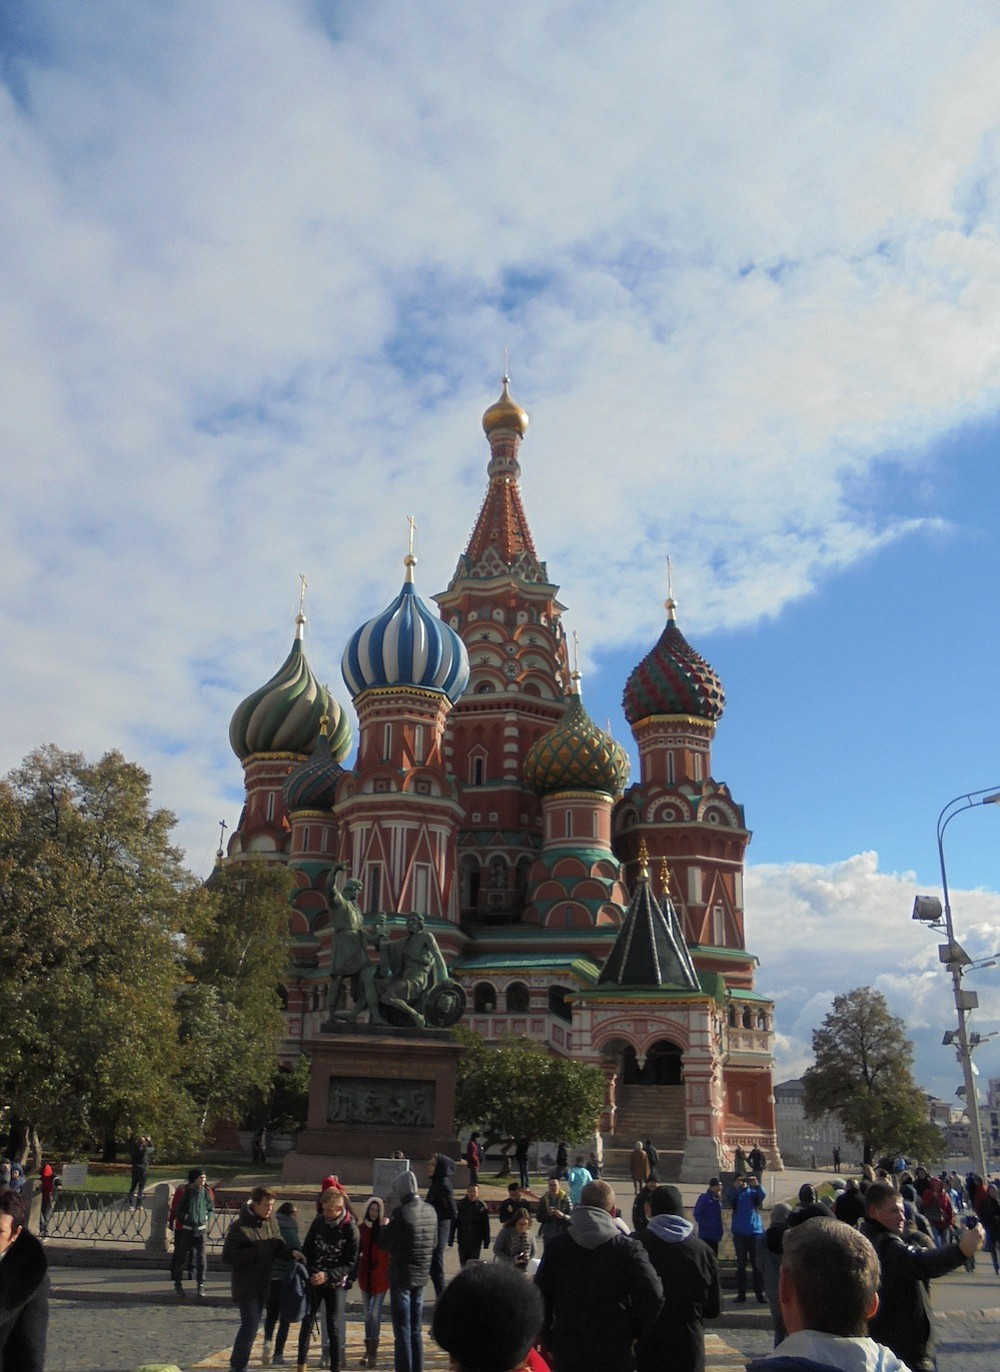 Admiring the fairytale-like St. Basil's Cathedral.